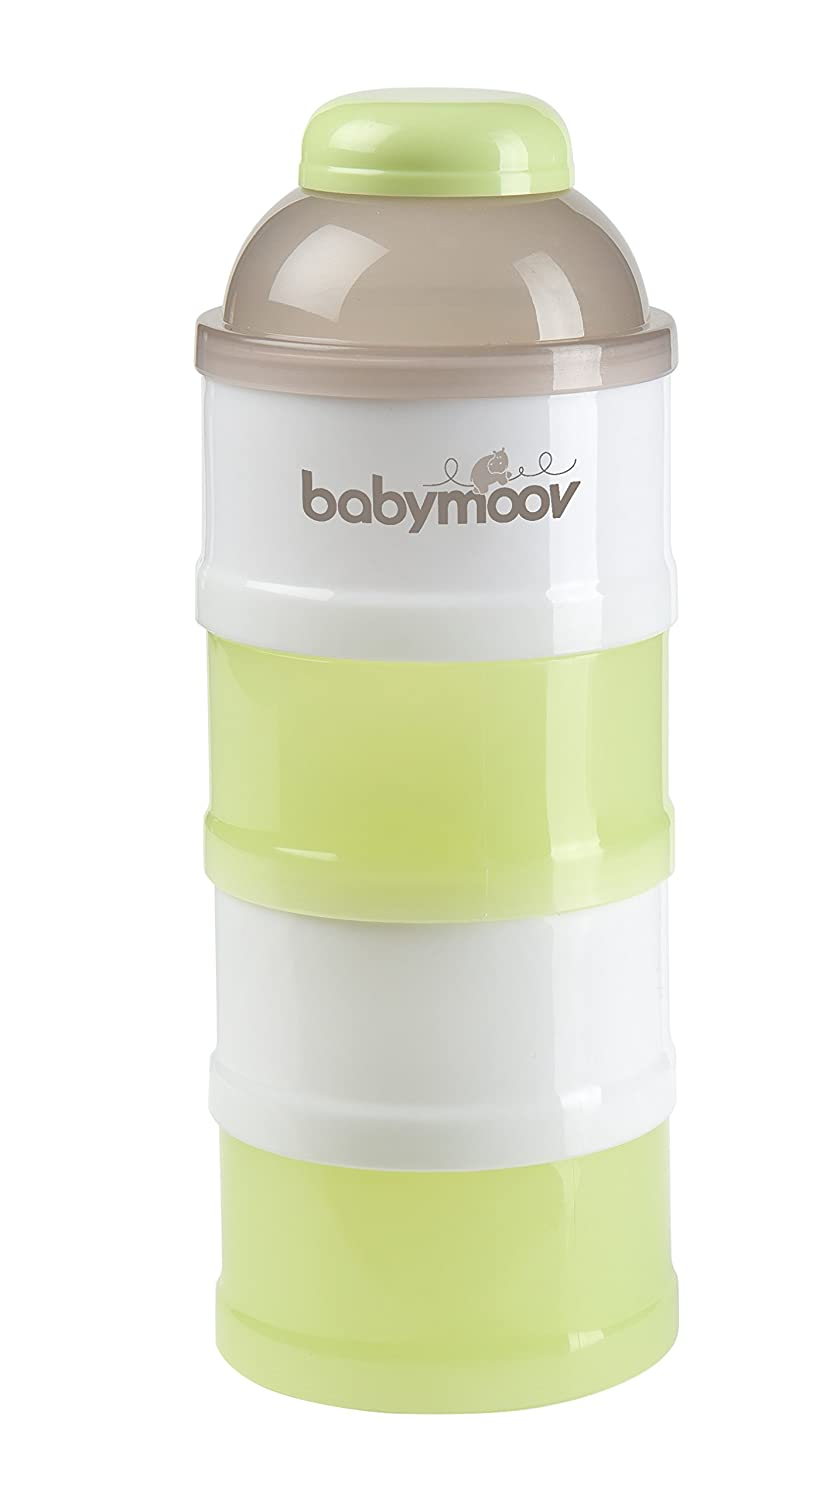 Babymoov Baby Formula Dispenser - 4 Stackable Compartments A004209